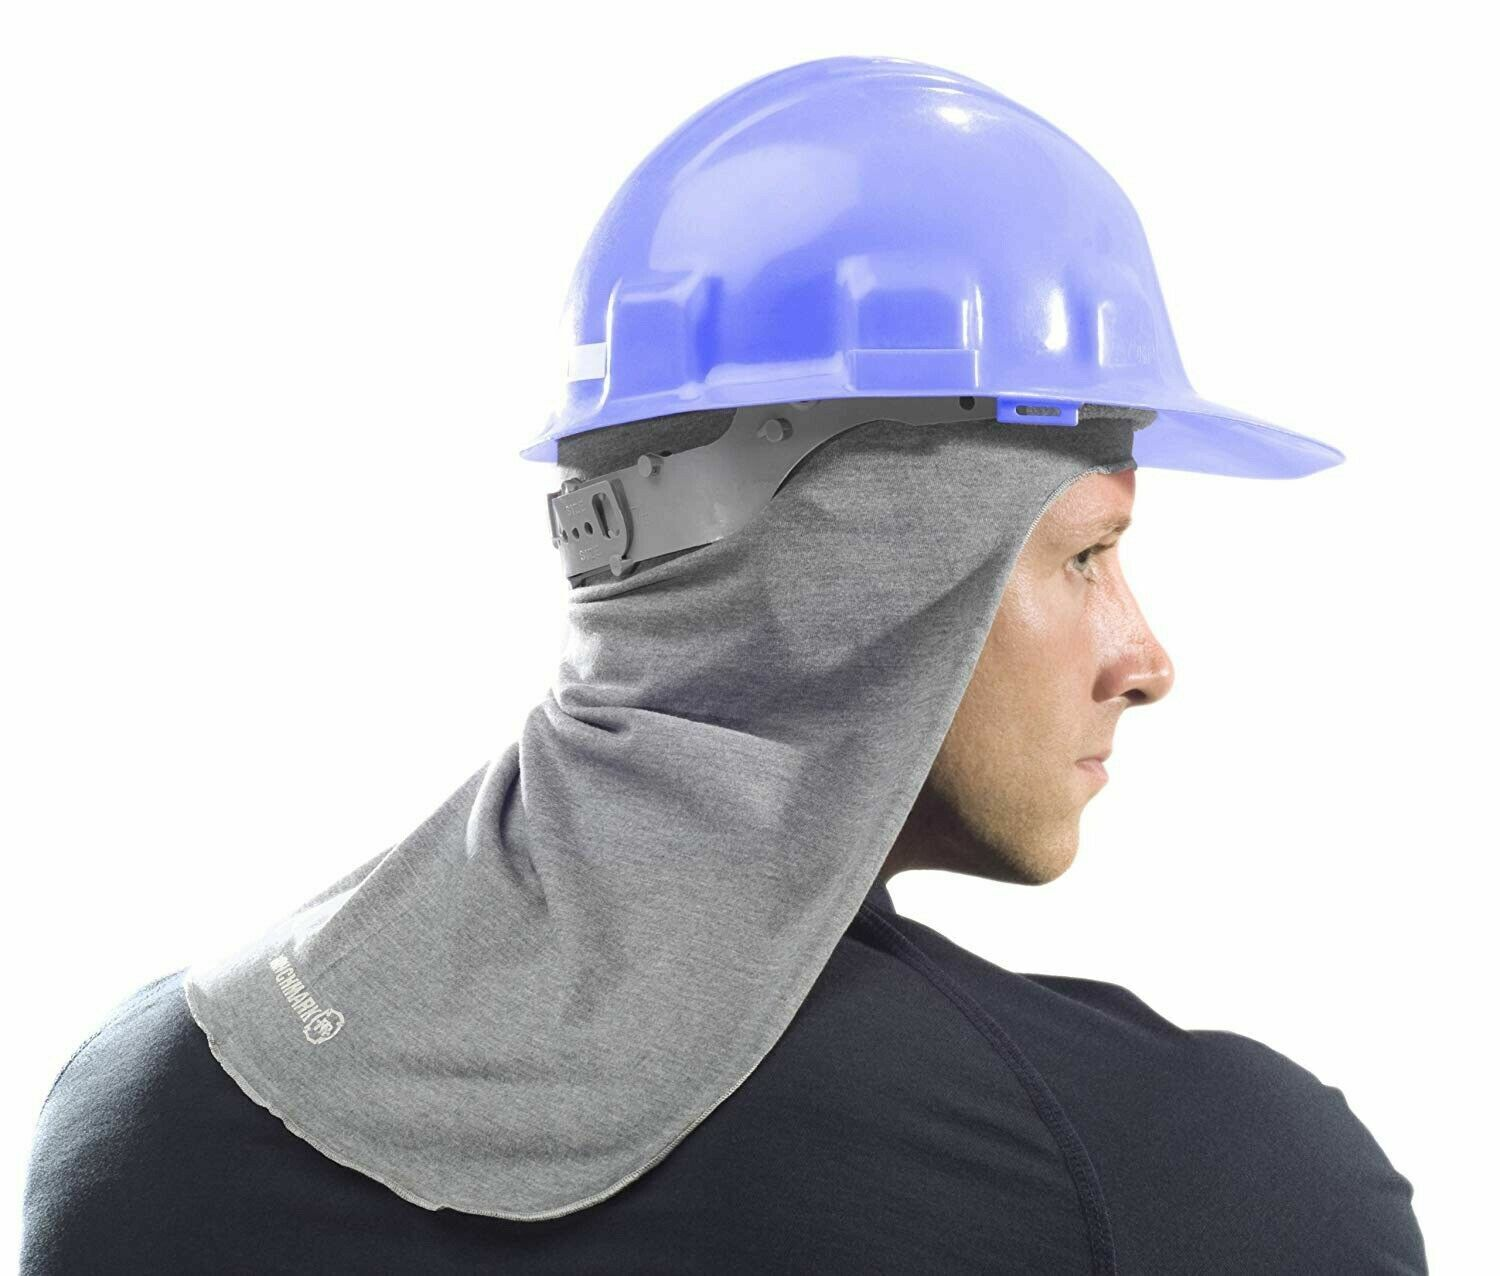 Lt Gray One Size Fits All Hats Flame Resistant FR Hard Hat Liner Sun Shade